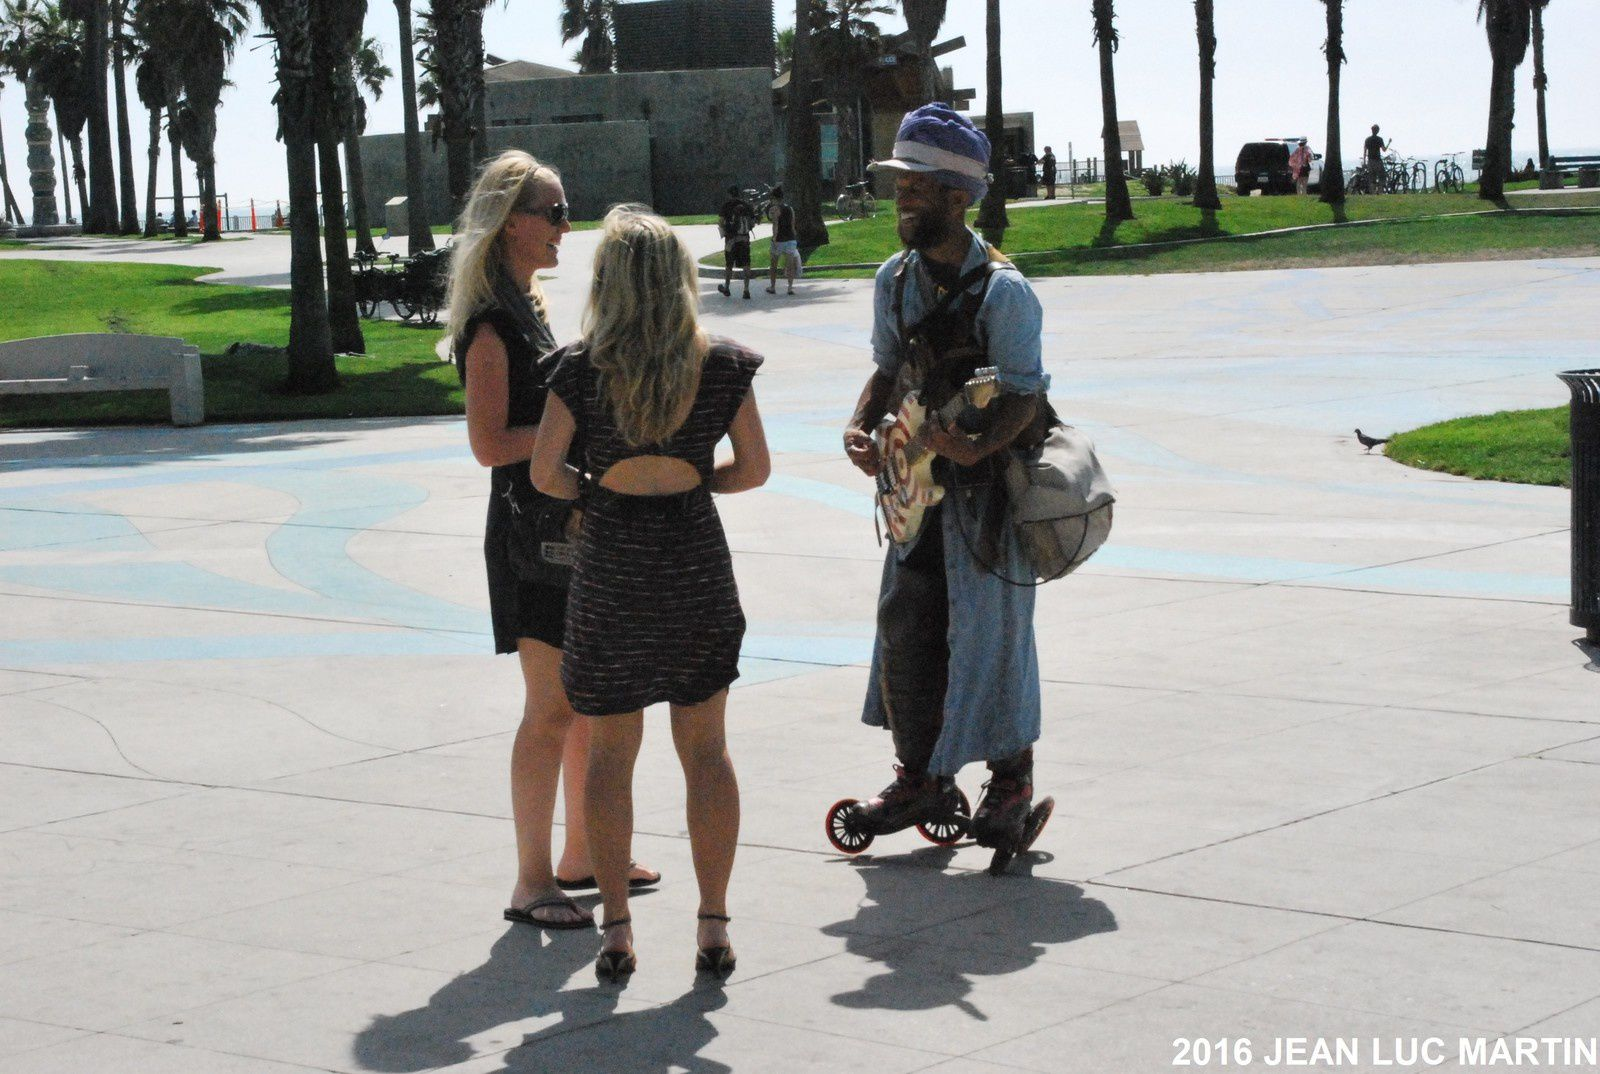 THE BLUESMAN AND THE GIRLS